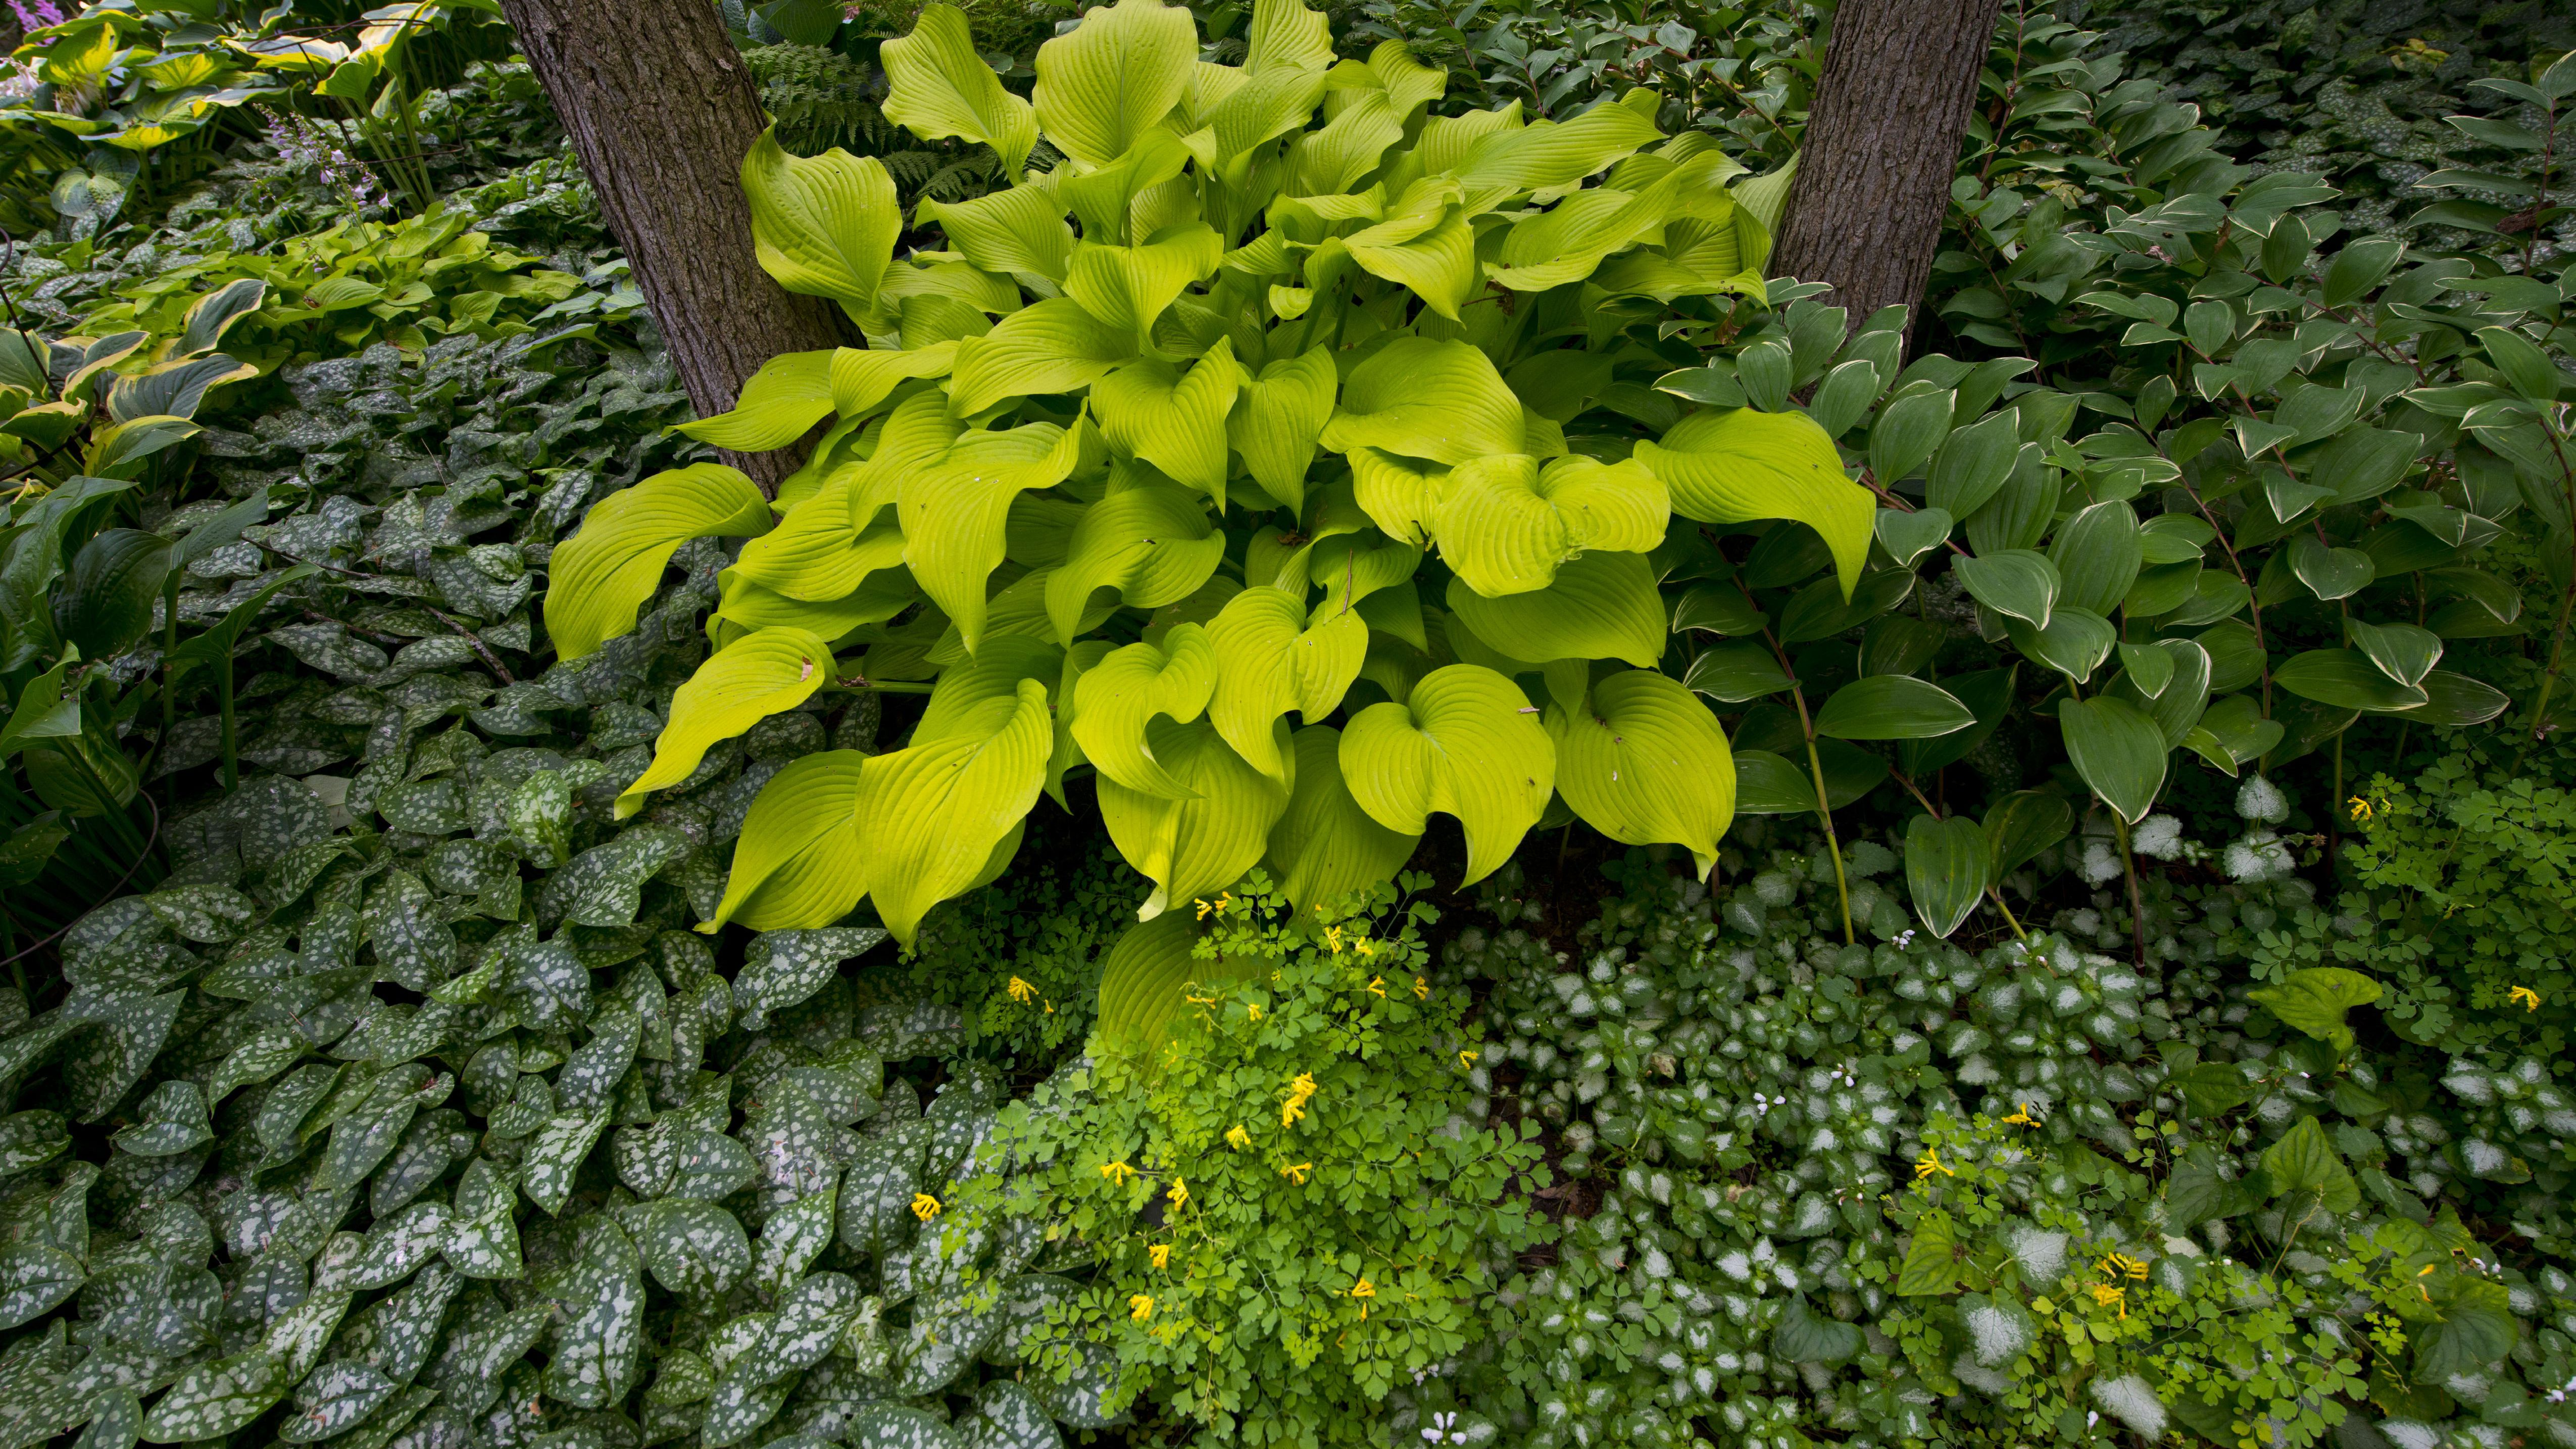 Hosta Plant Care And Growing Guide